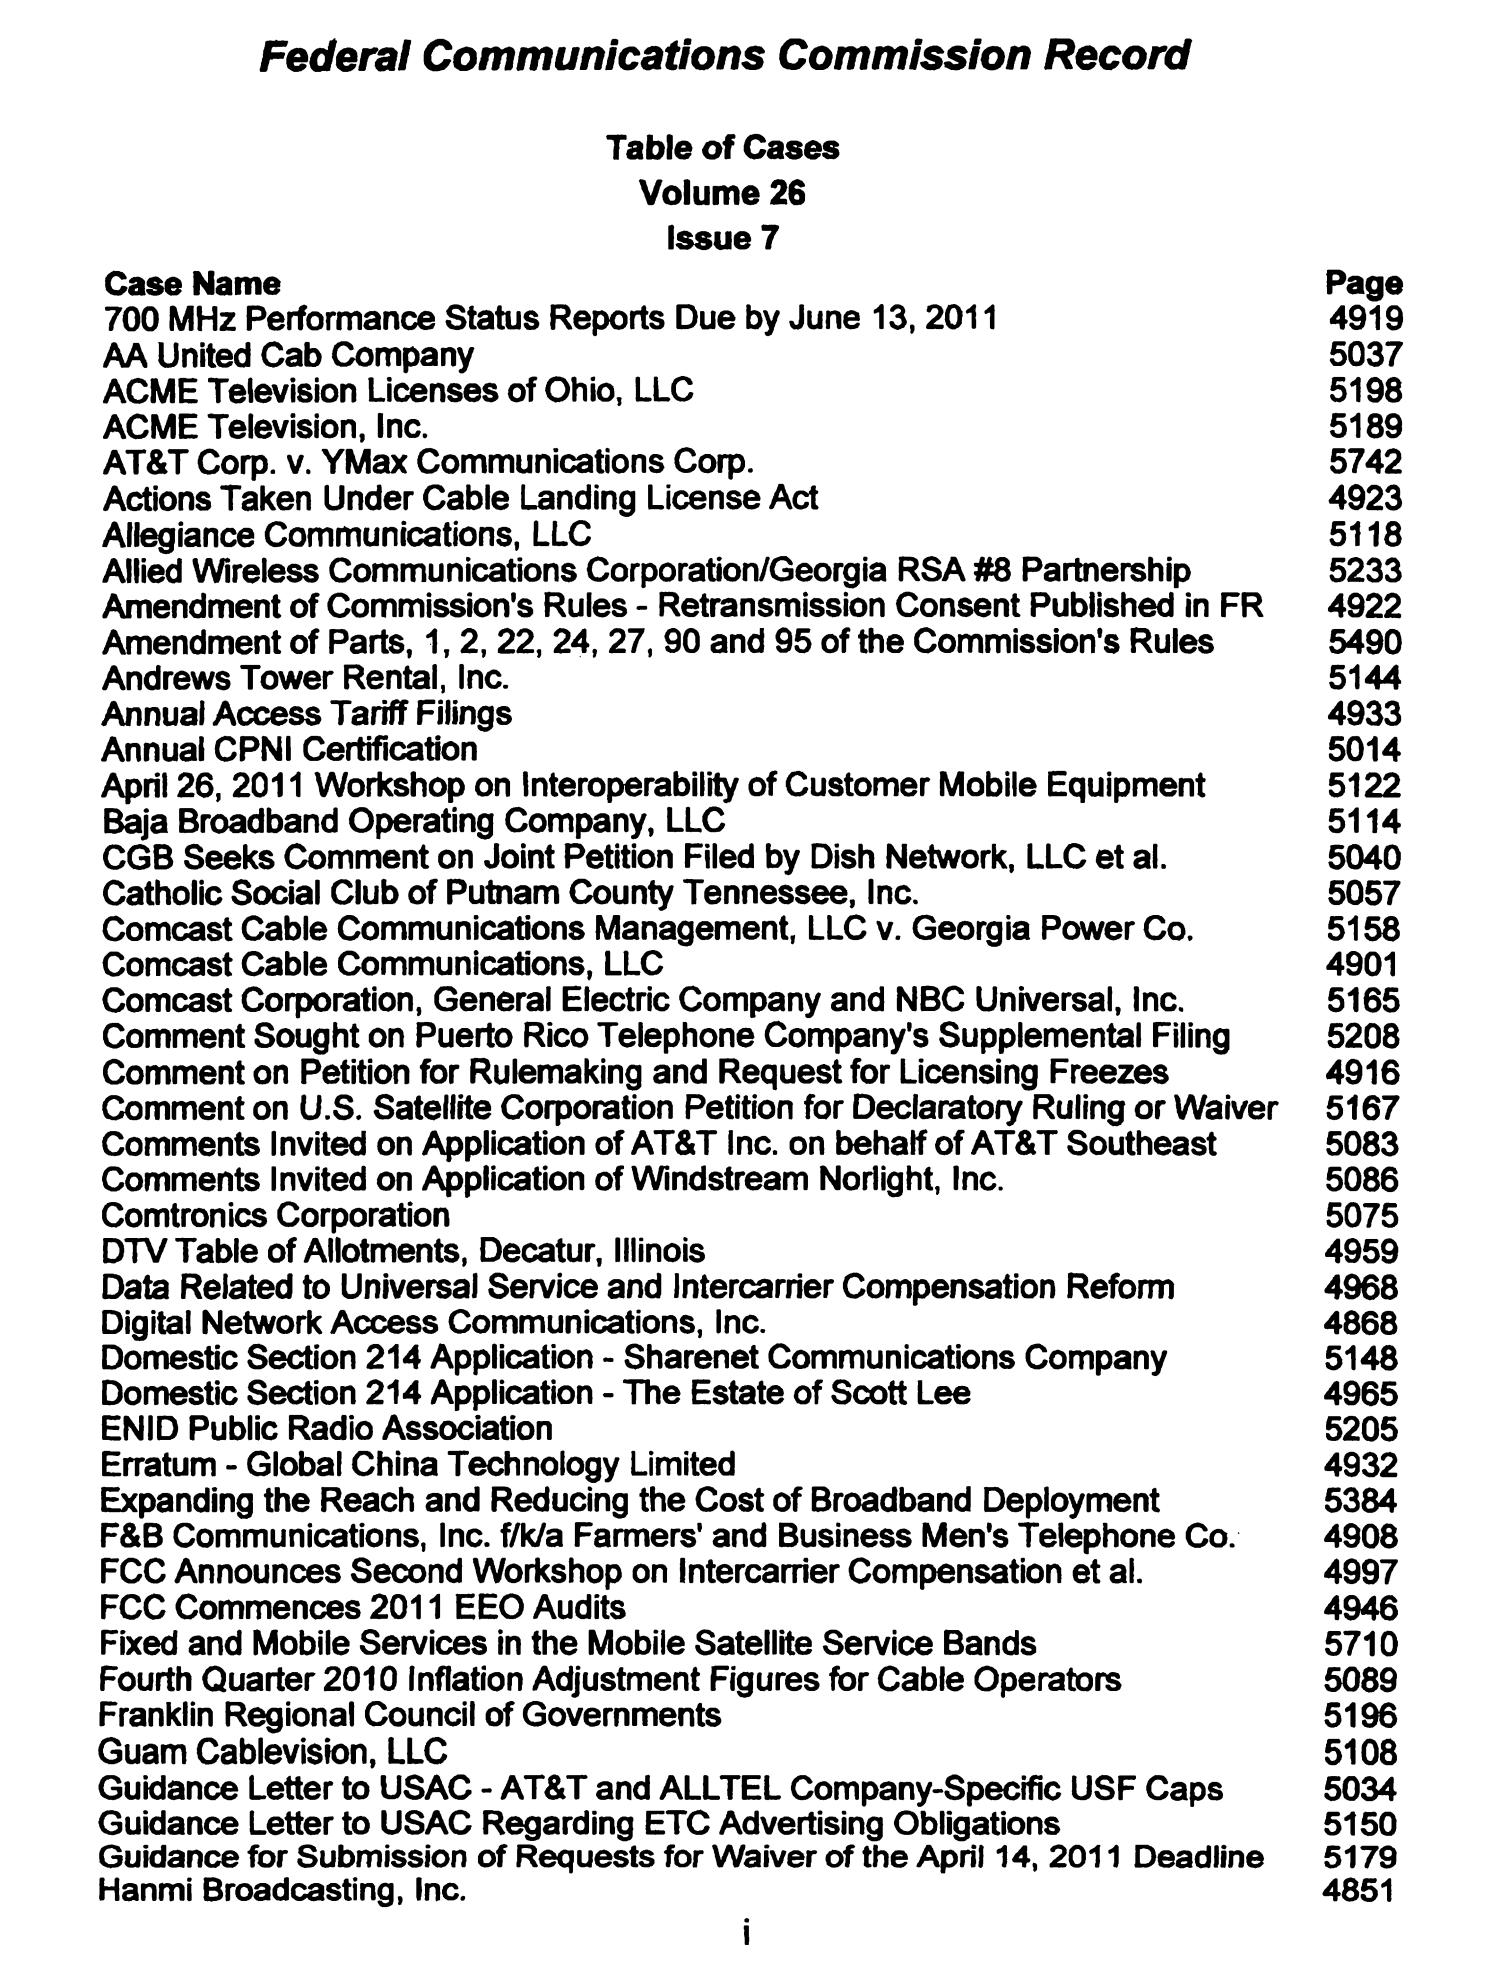 FCC Record, Volume 26, No. 7, Pages 4843 to 5761, March 28 - April 08, 2011                                                                                                      I